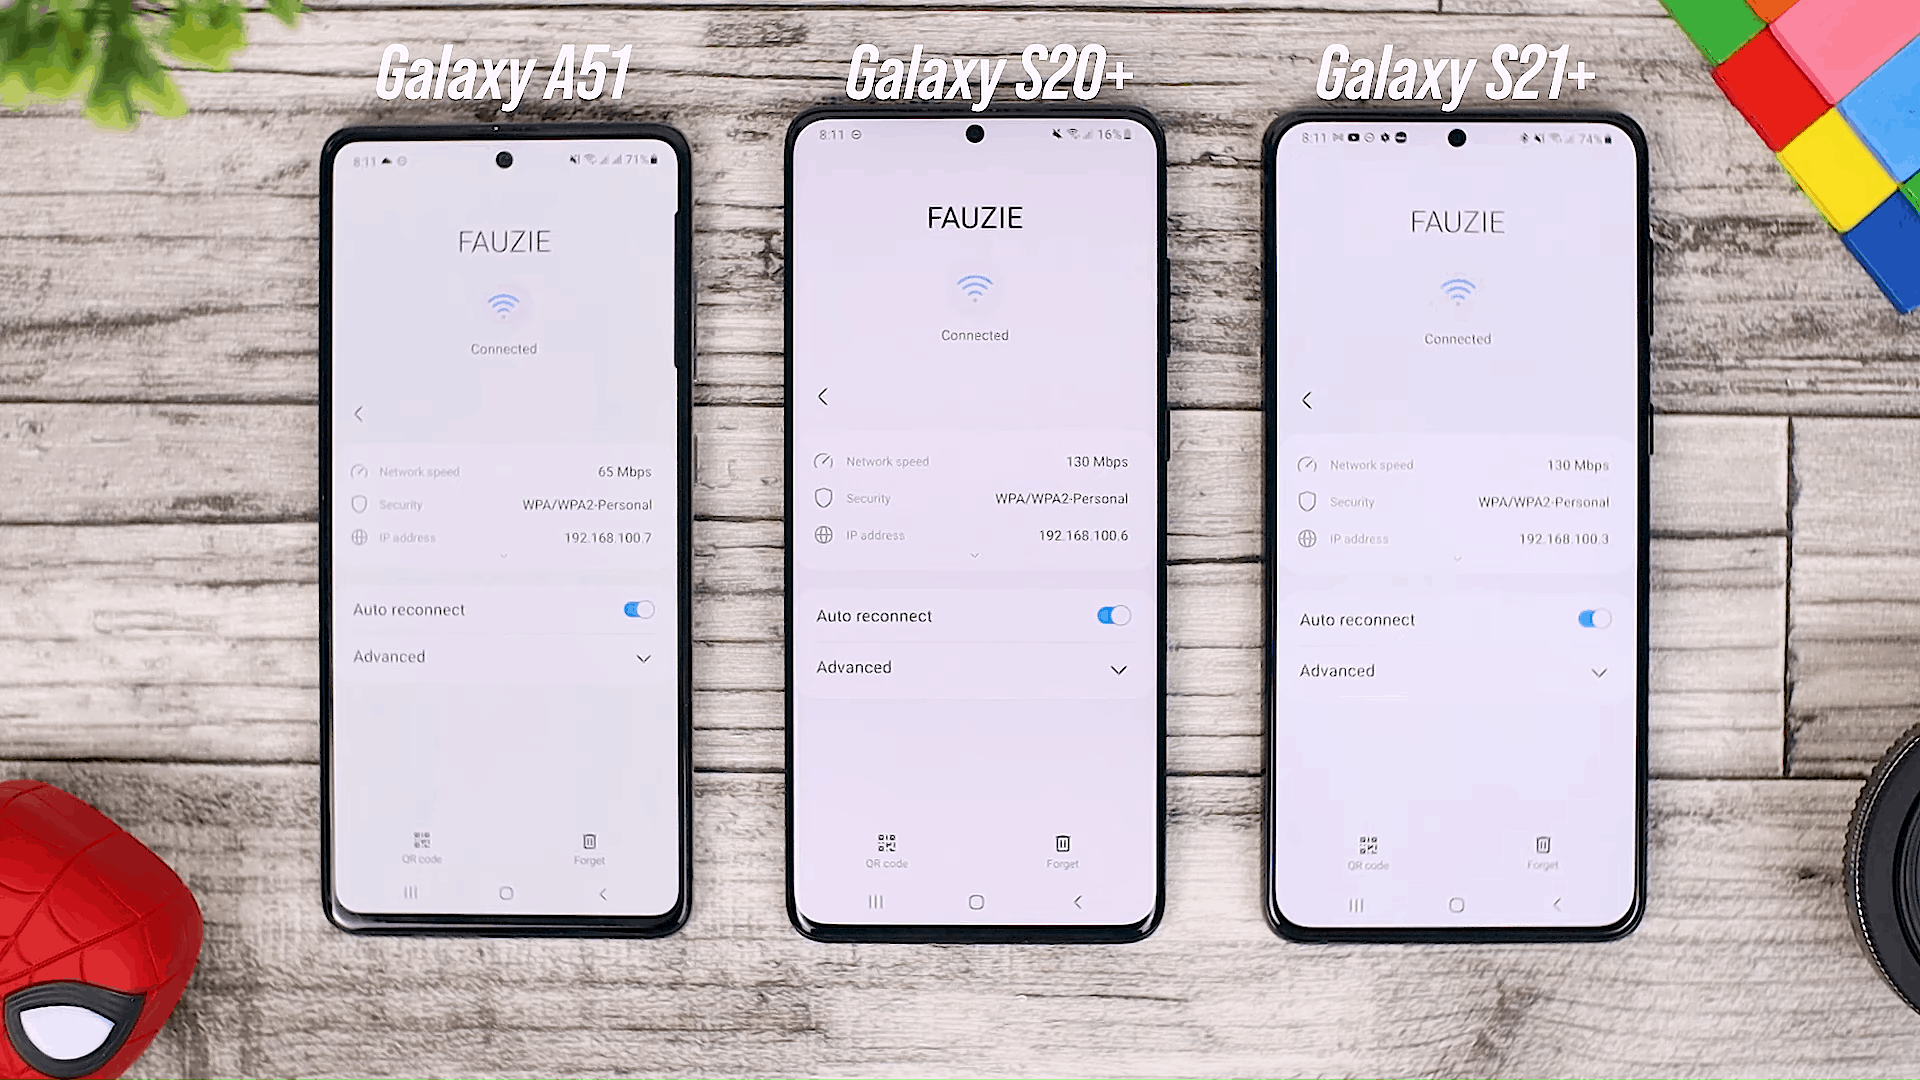 New Wi-Fi View - One UI 3.0 features of Samsung Galaxy A51 and its comparison with the Galaxy S20+ and One UI 3.1 on the Galaxy S21+